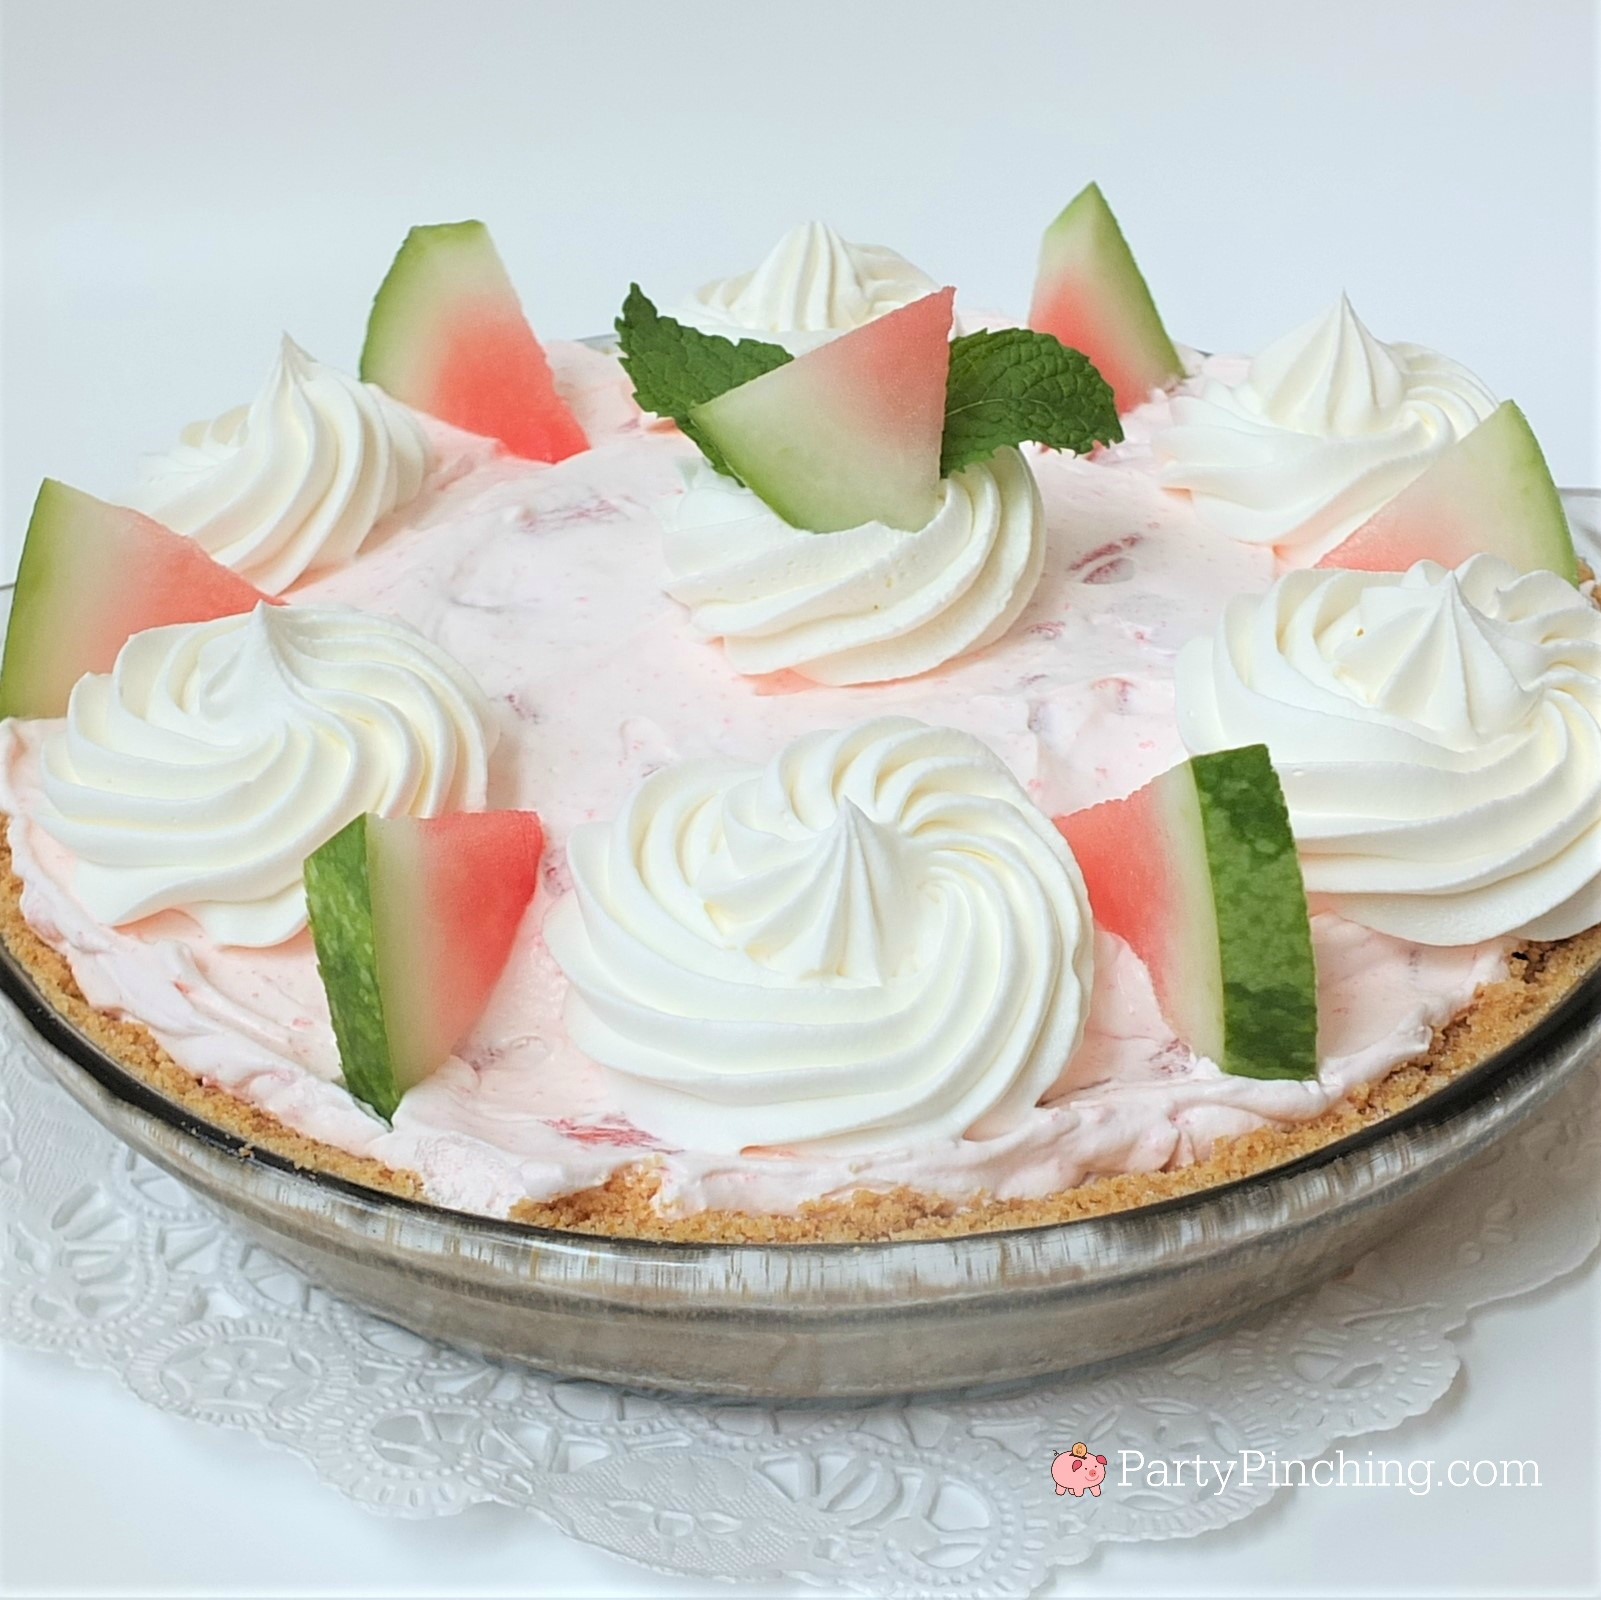 watermelon pie, easy creamy watermelon pie, fluffy watermelon pie for summer, jolly rancher jello watermelon pie, potluck picnic desserts for 4th of July, no-bake pie, summer dessert ideas